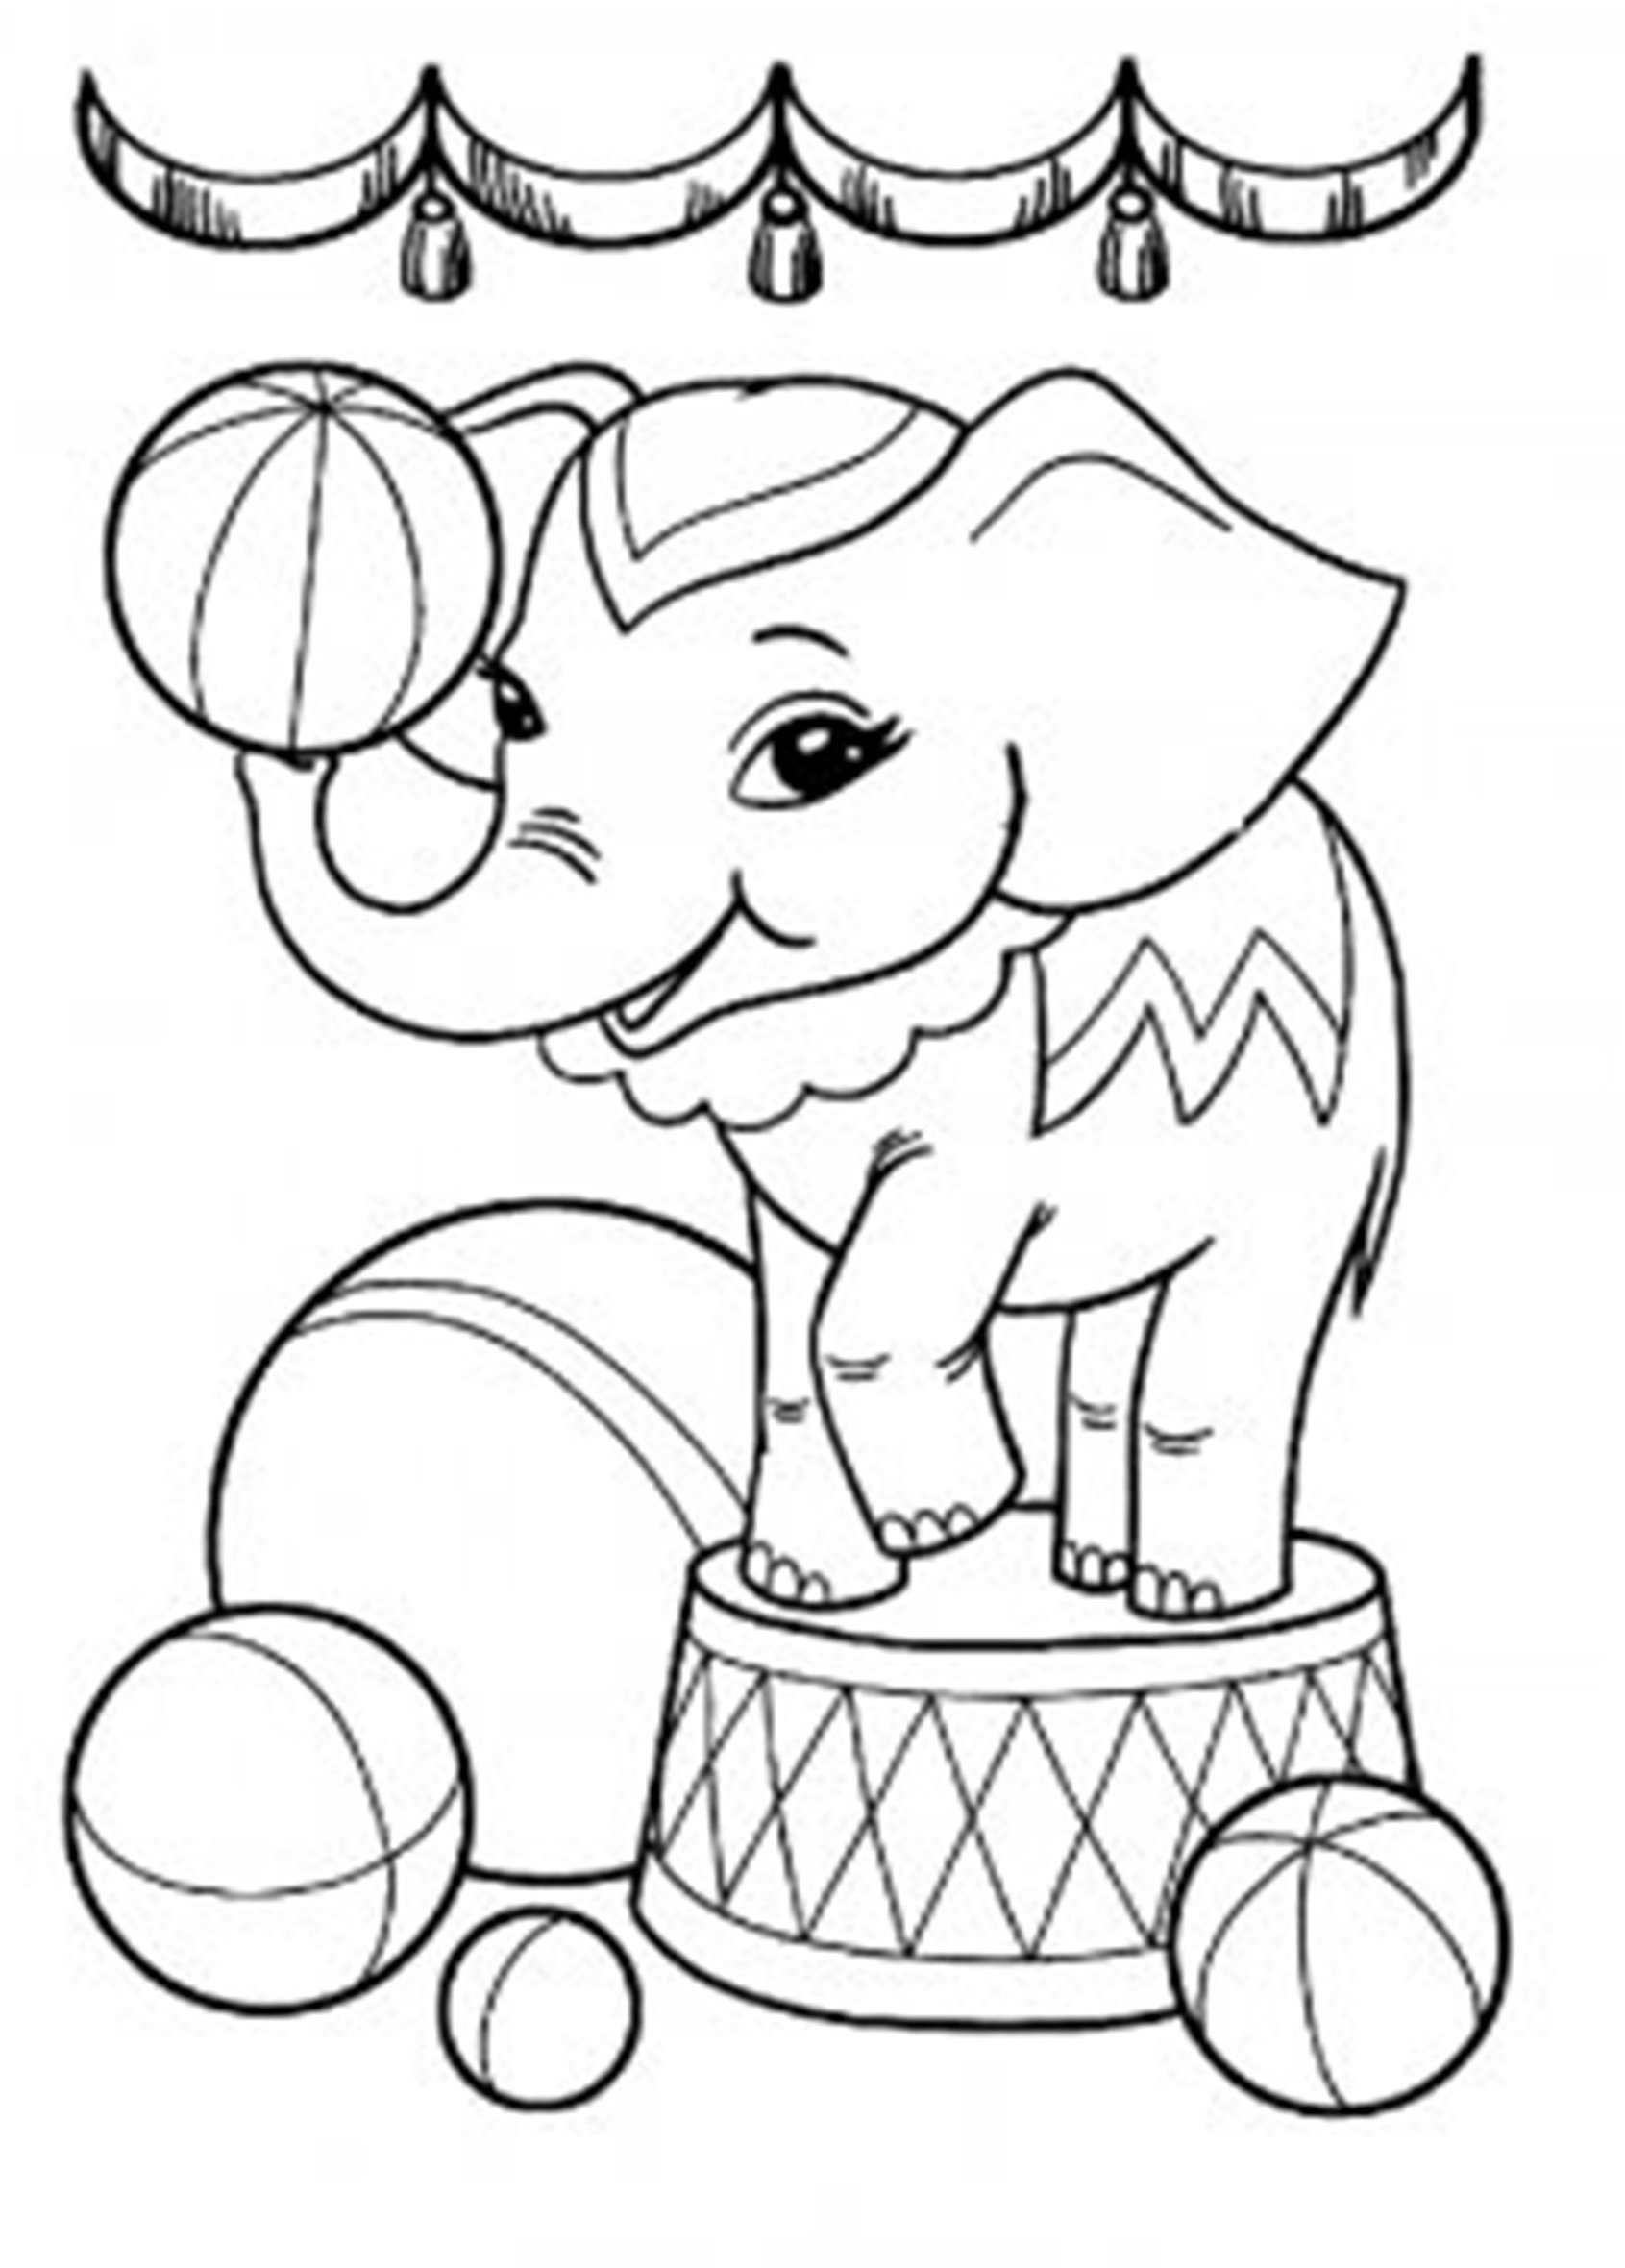 This is an image of Crazy Elephant Coloring Pages Printable